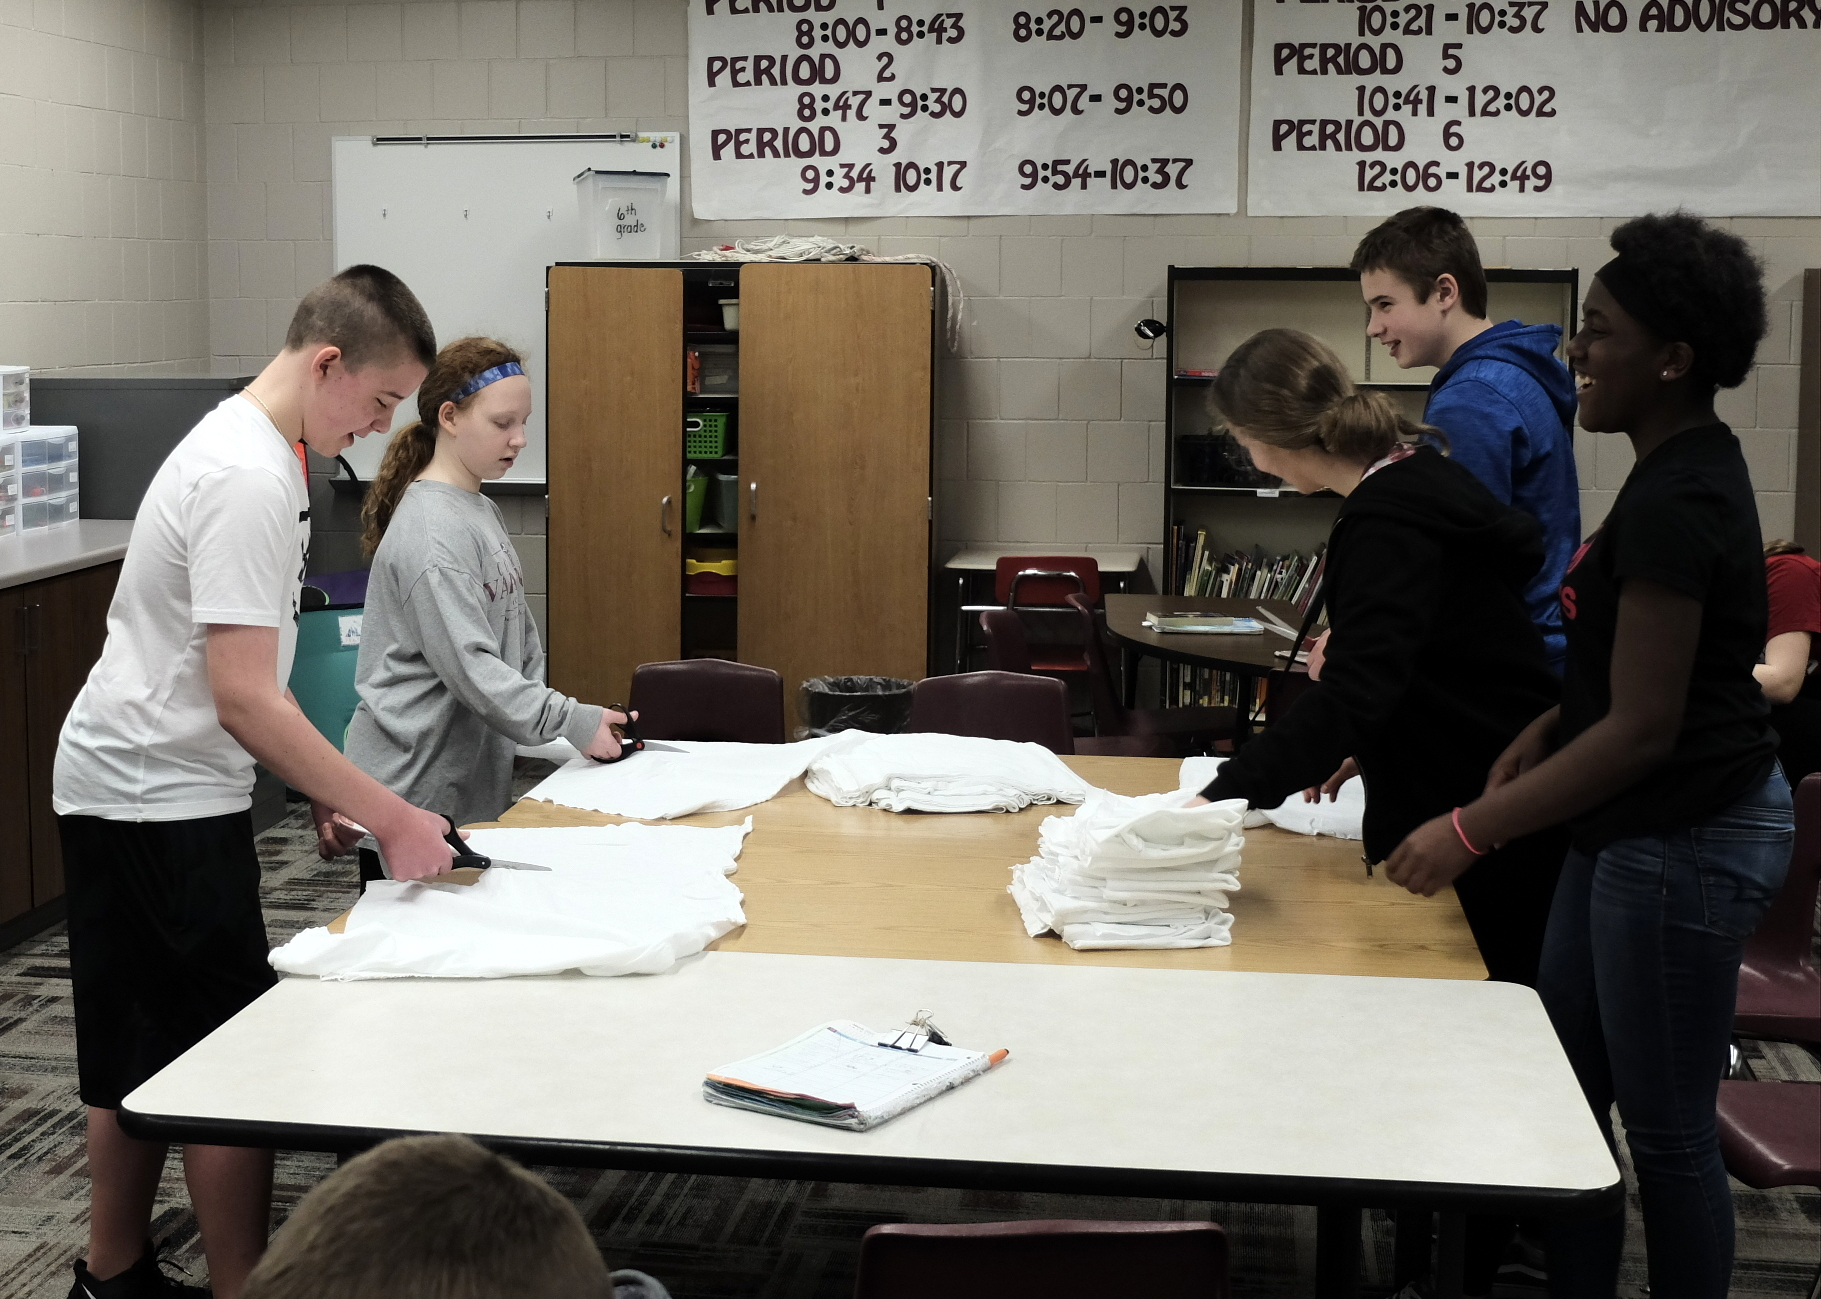 La Vista Middle students spent time cutting and folding cleaning rags for flood victims.